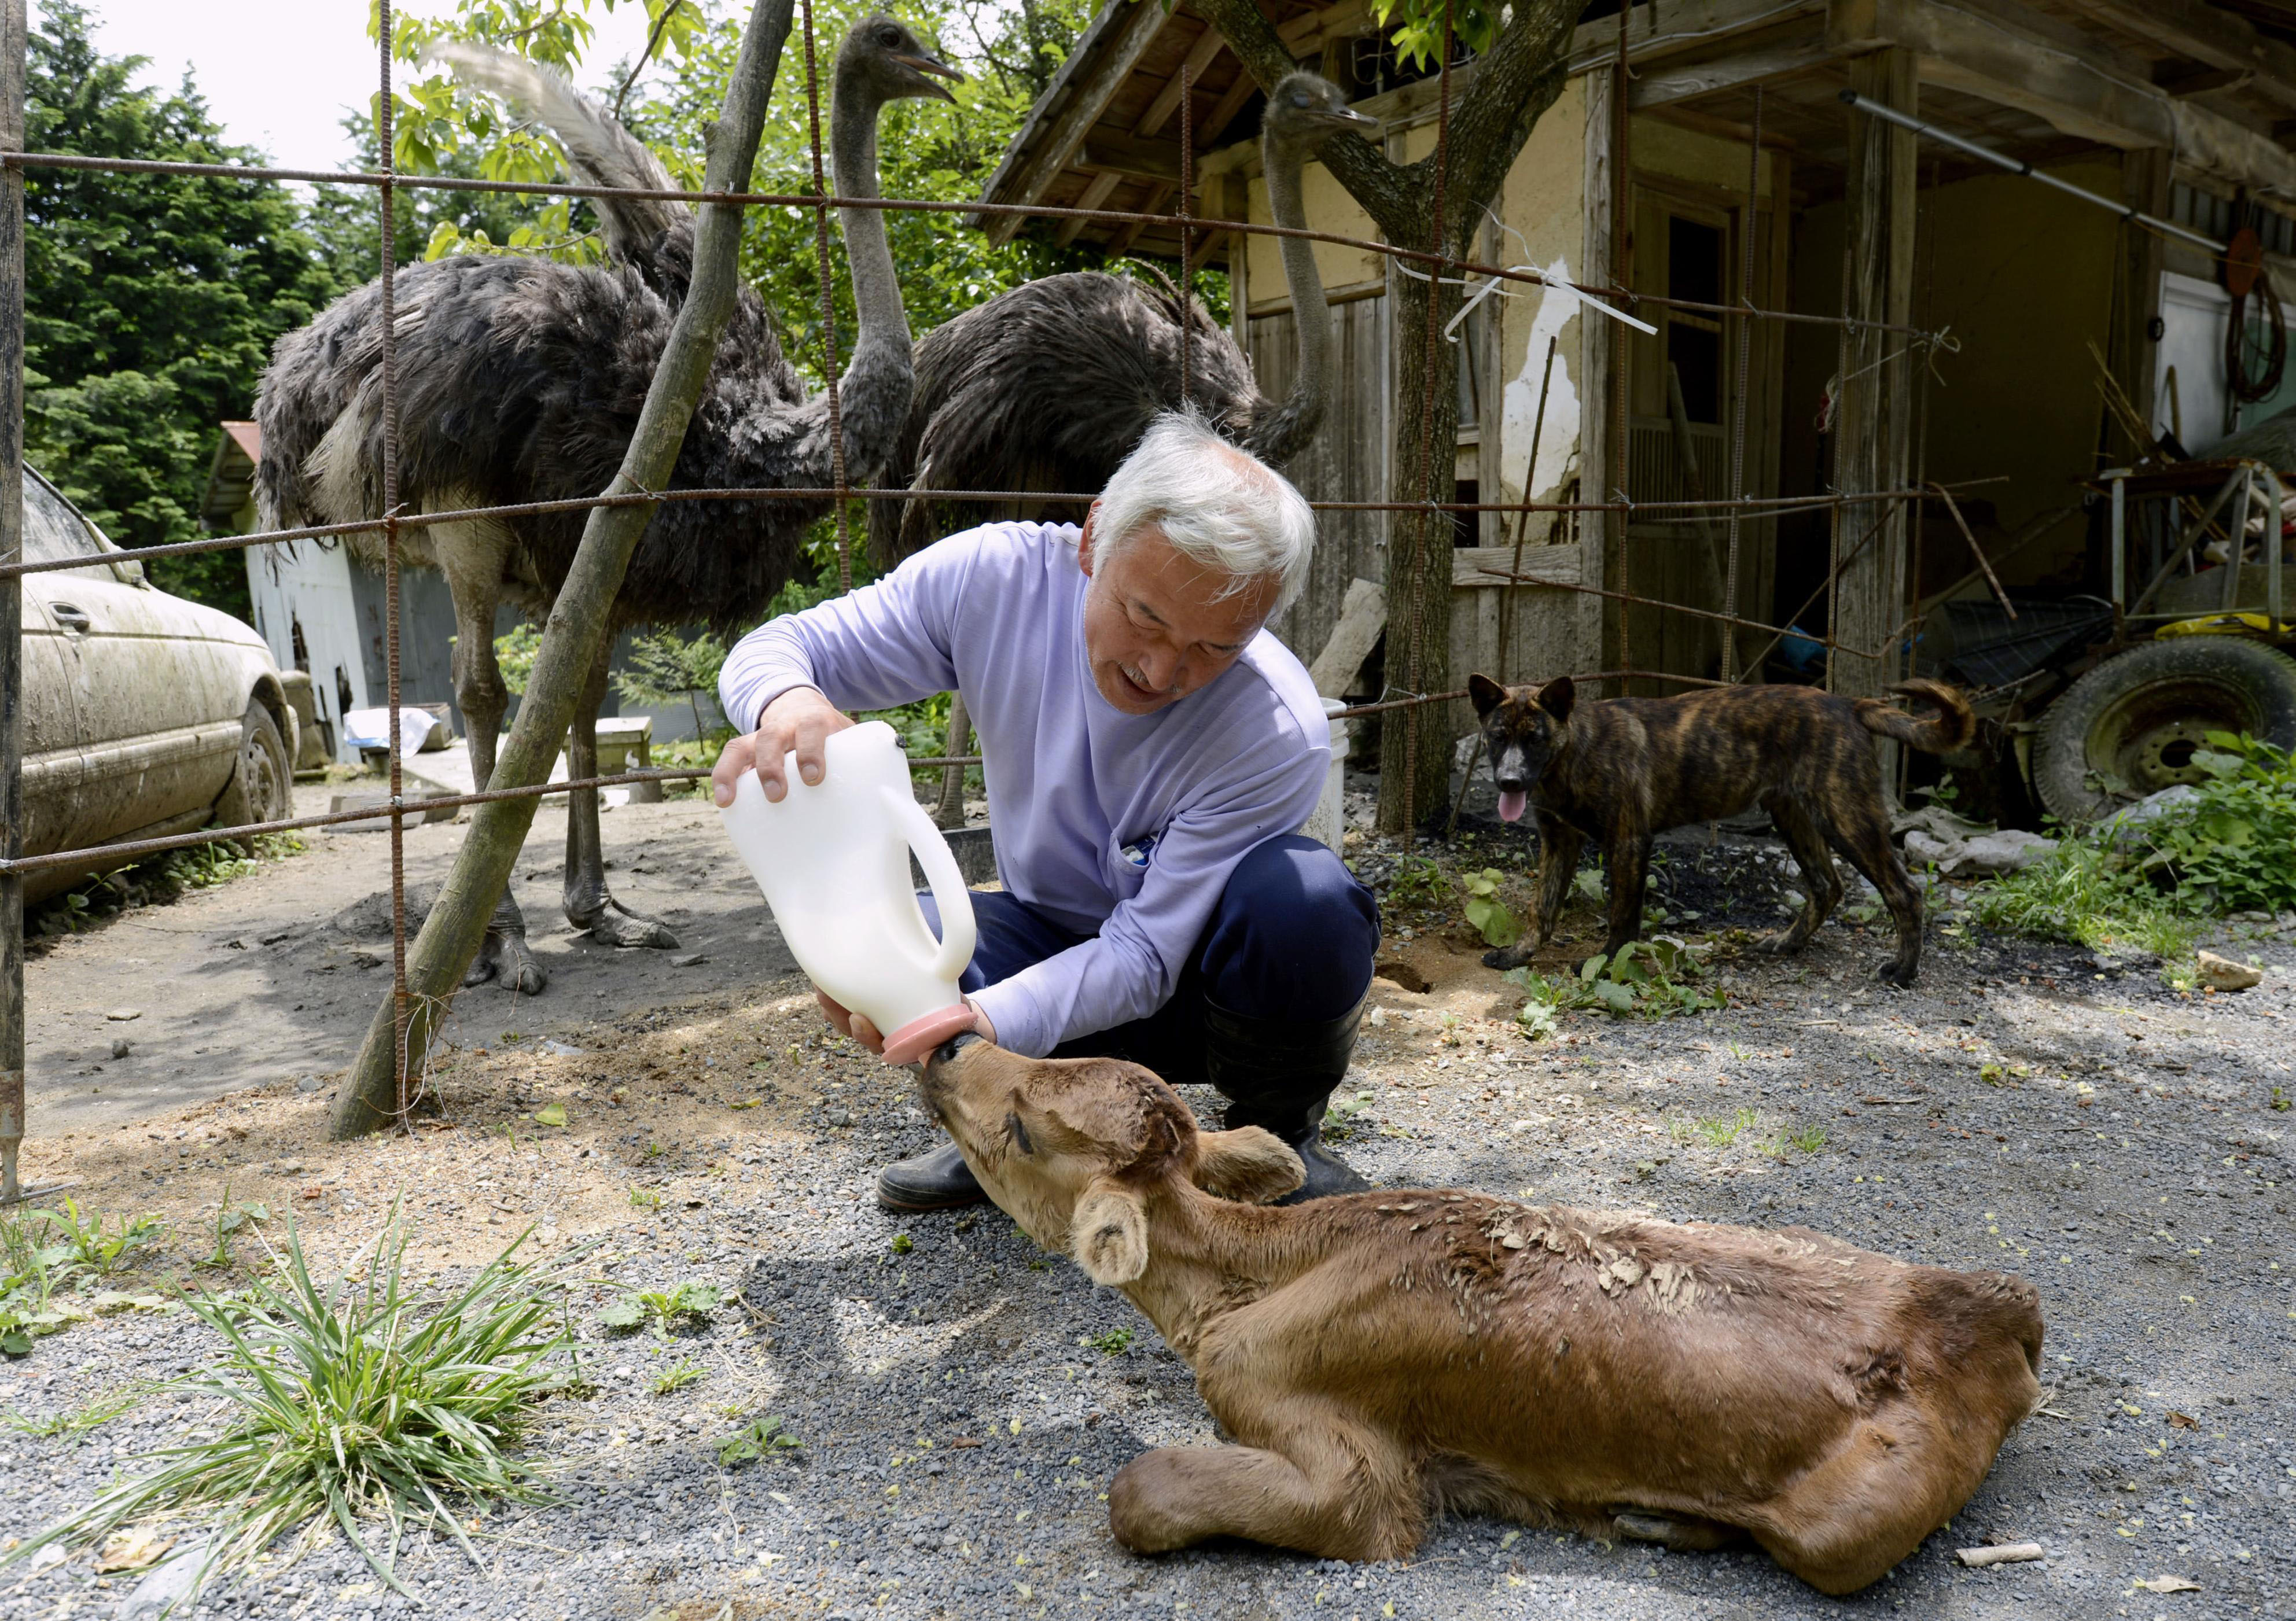 National Animal of Japan http://www.japantimes.co.jp/news/2012/08/08/national/have-mercy-on-the-animals/